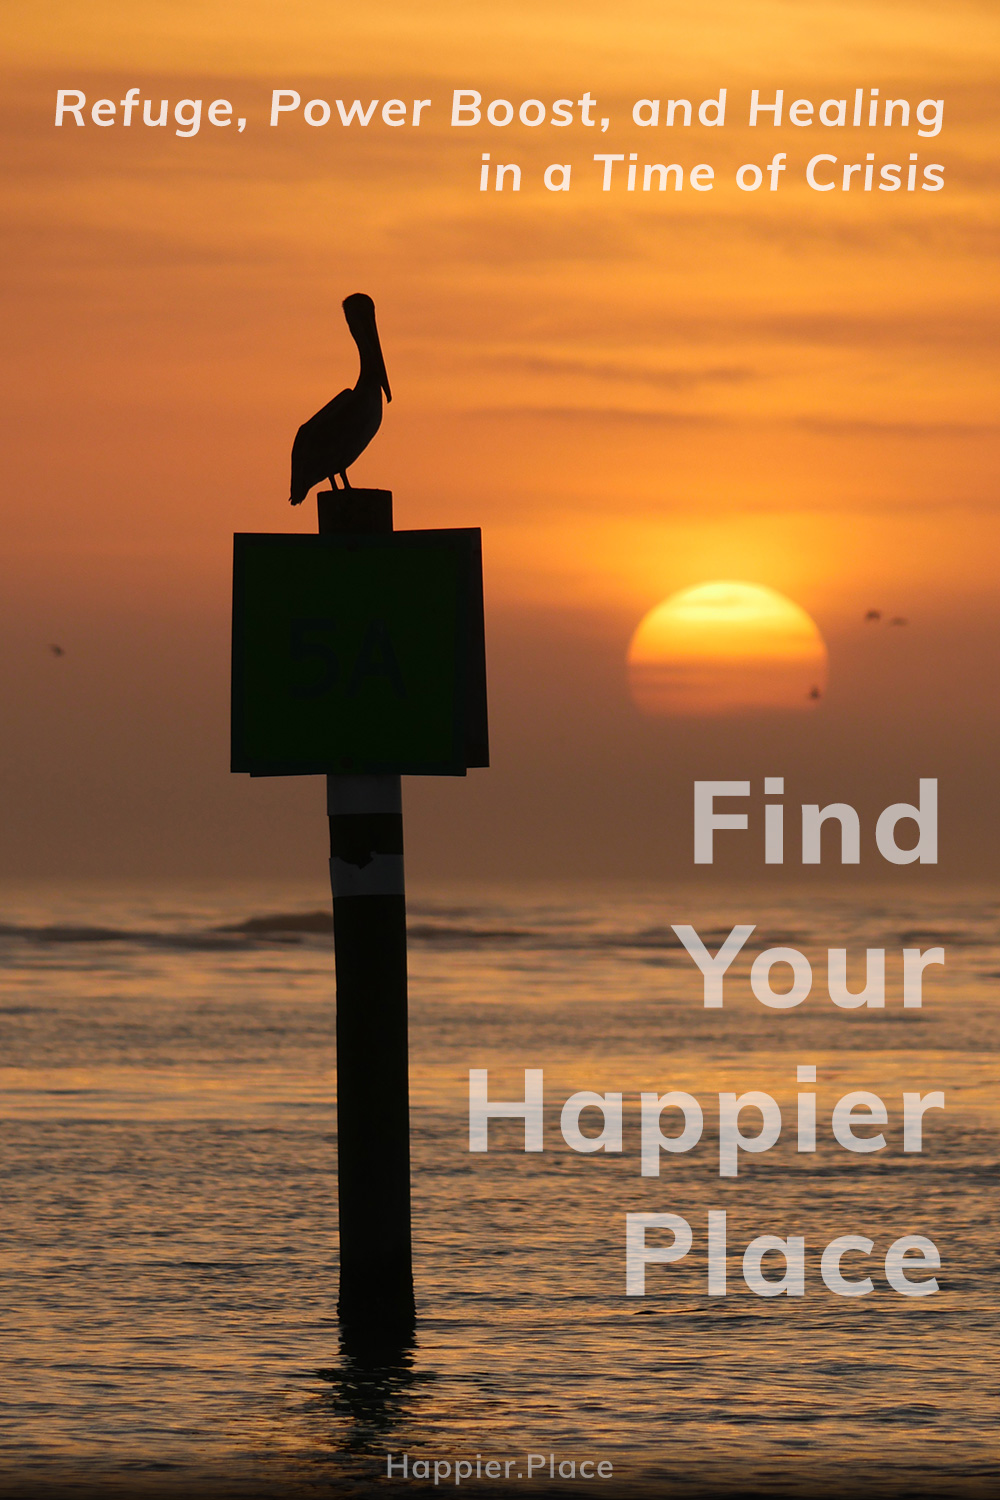 happier healthier tips: find your happier place for refuge, power boost and healing in a time of crisis